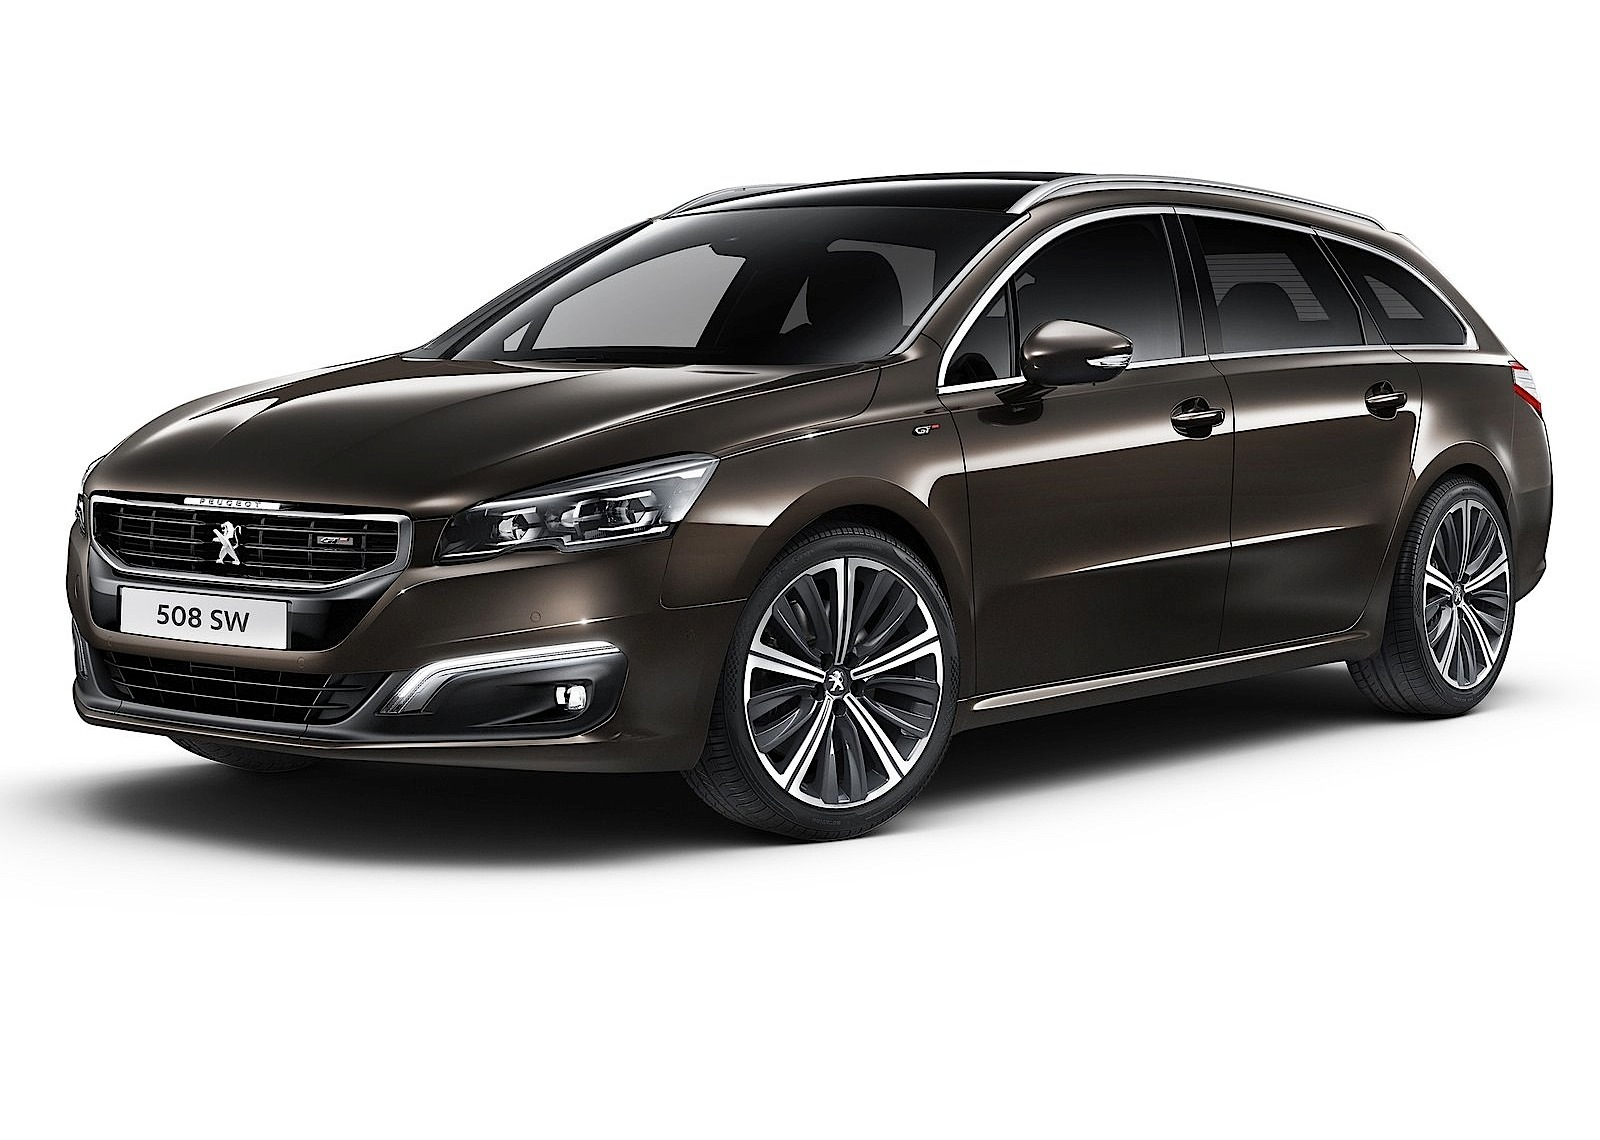 peugeot 508 sw specs photos 2014 2015 2016 2017 2018 autoevolution. Black Bedroom Furniture Sets. Home Design Ideas